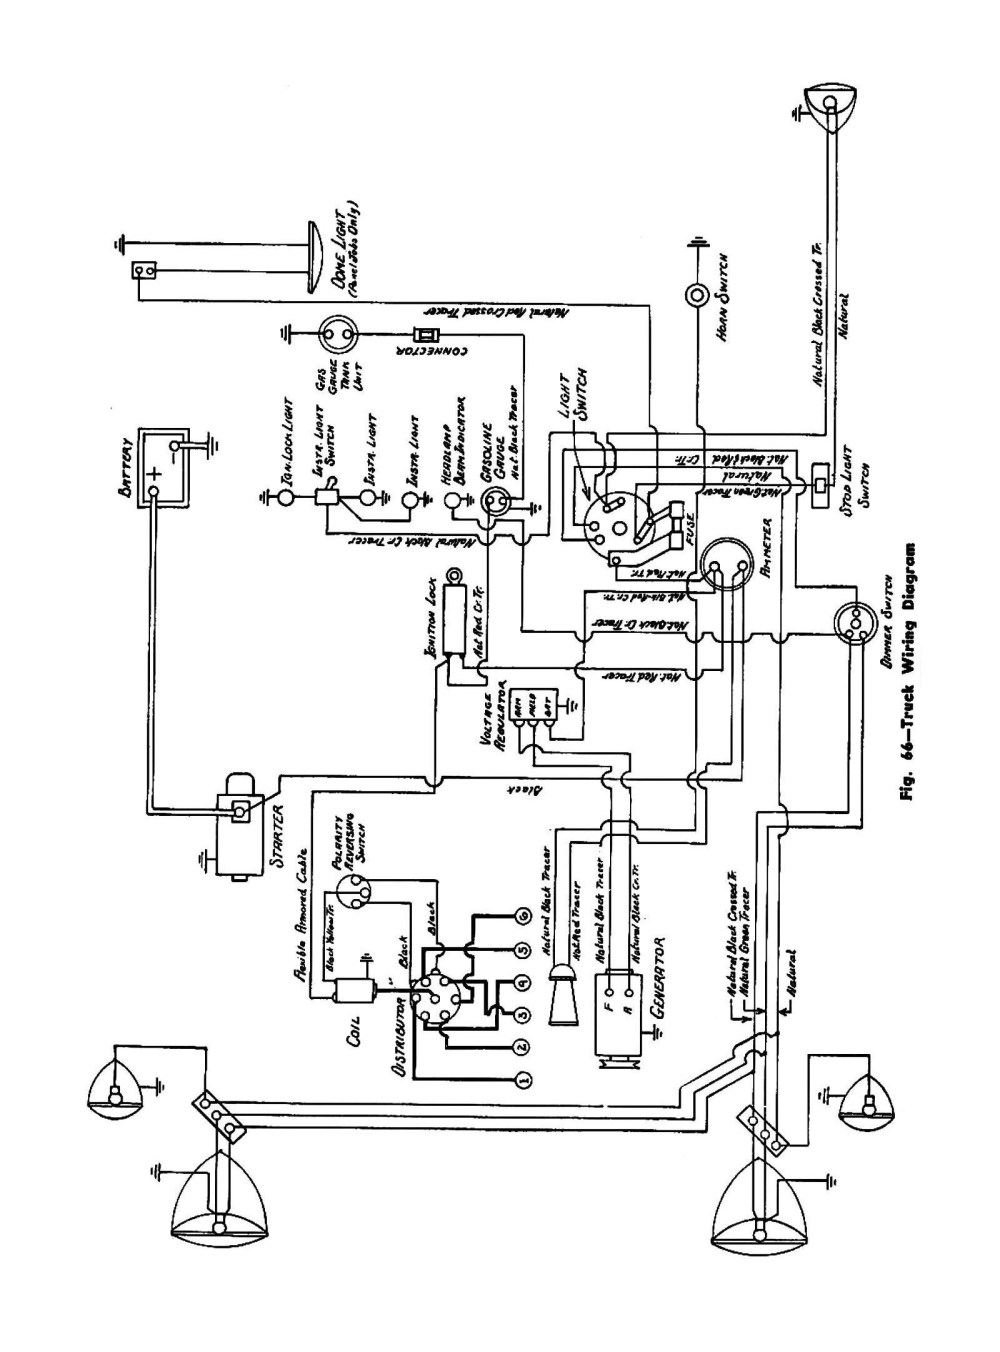 medium resolution of wrg 1835 wiring diagram for 1949 ford f100 1949 international truck wiring harness